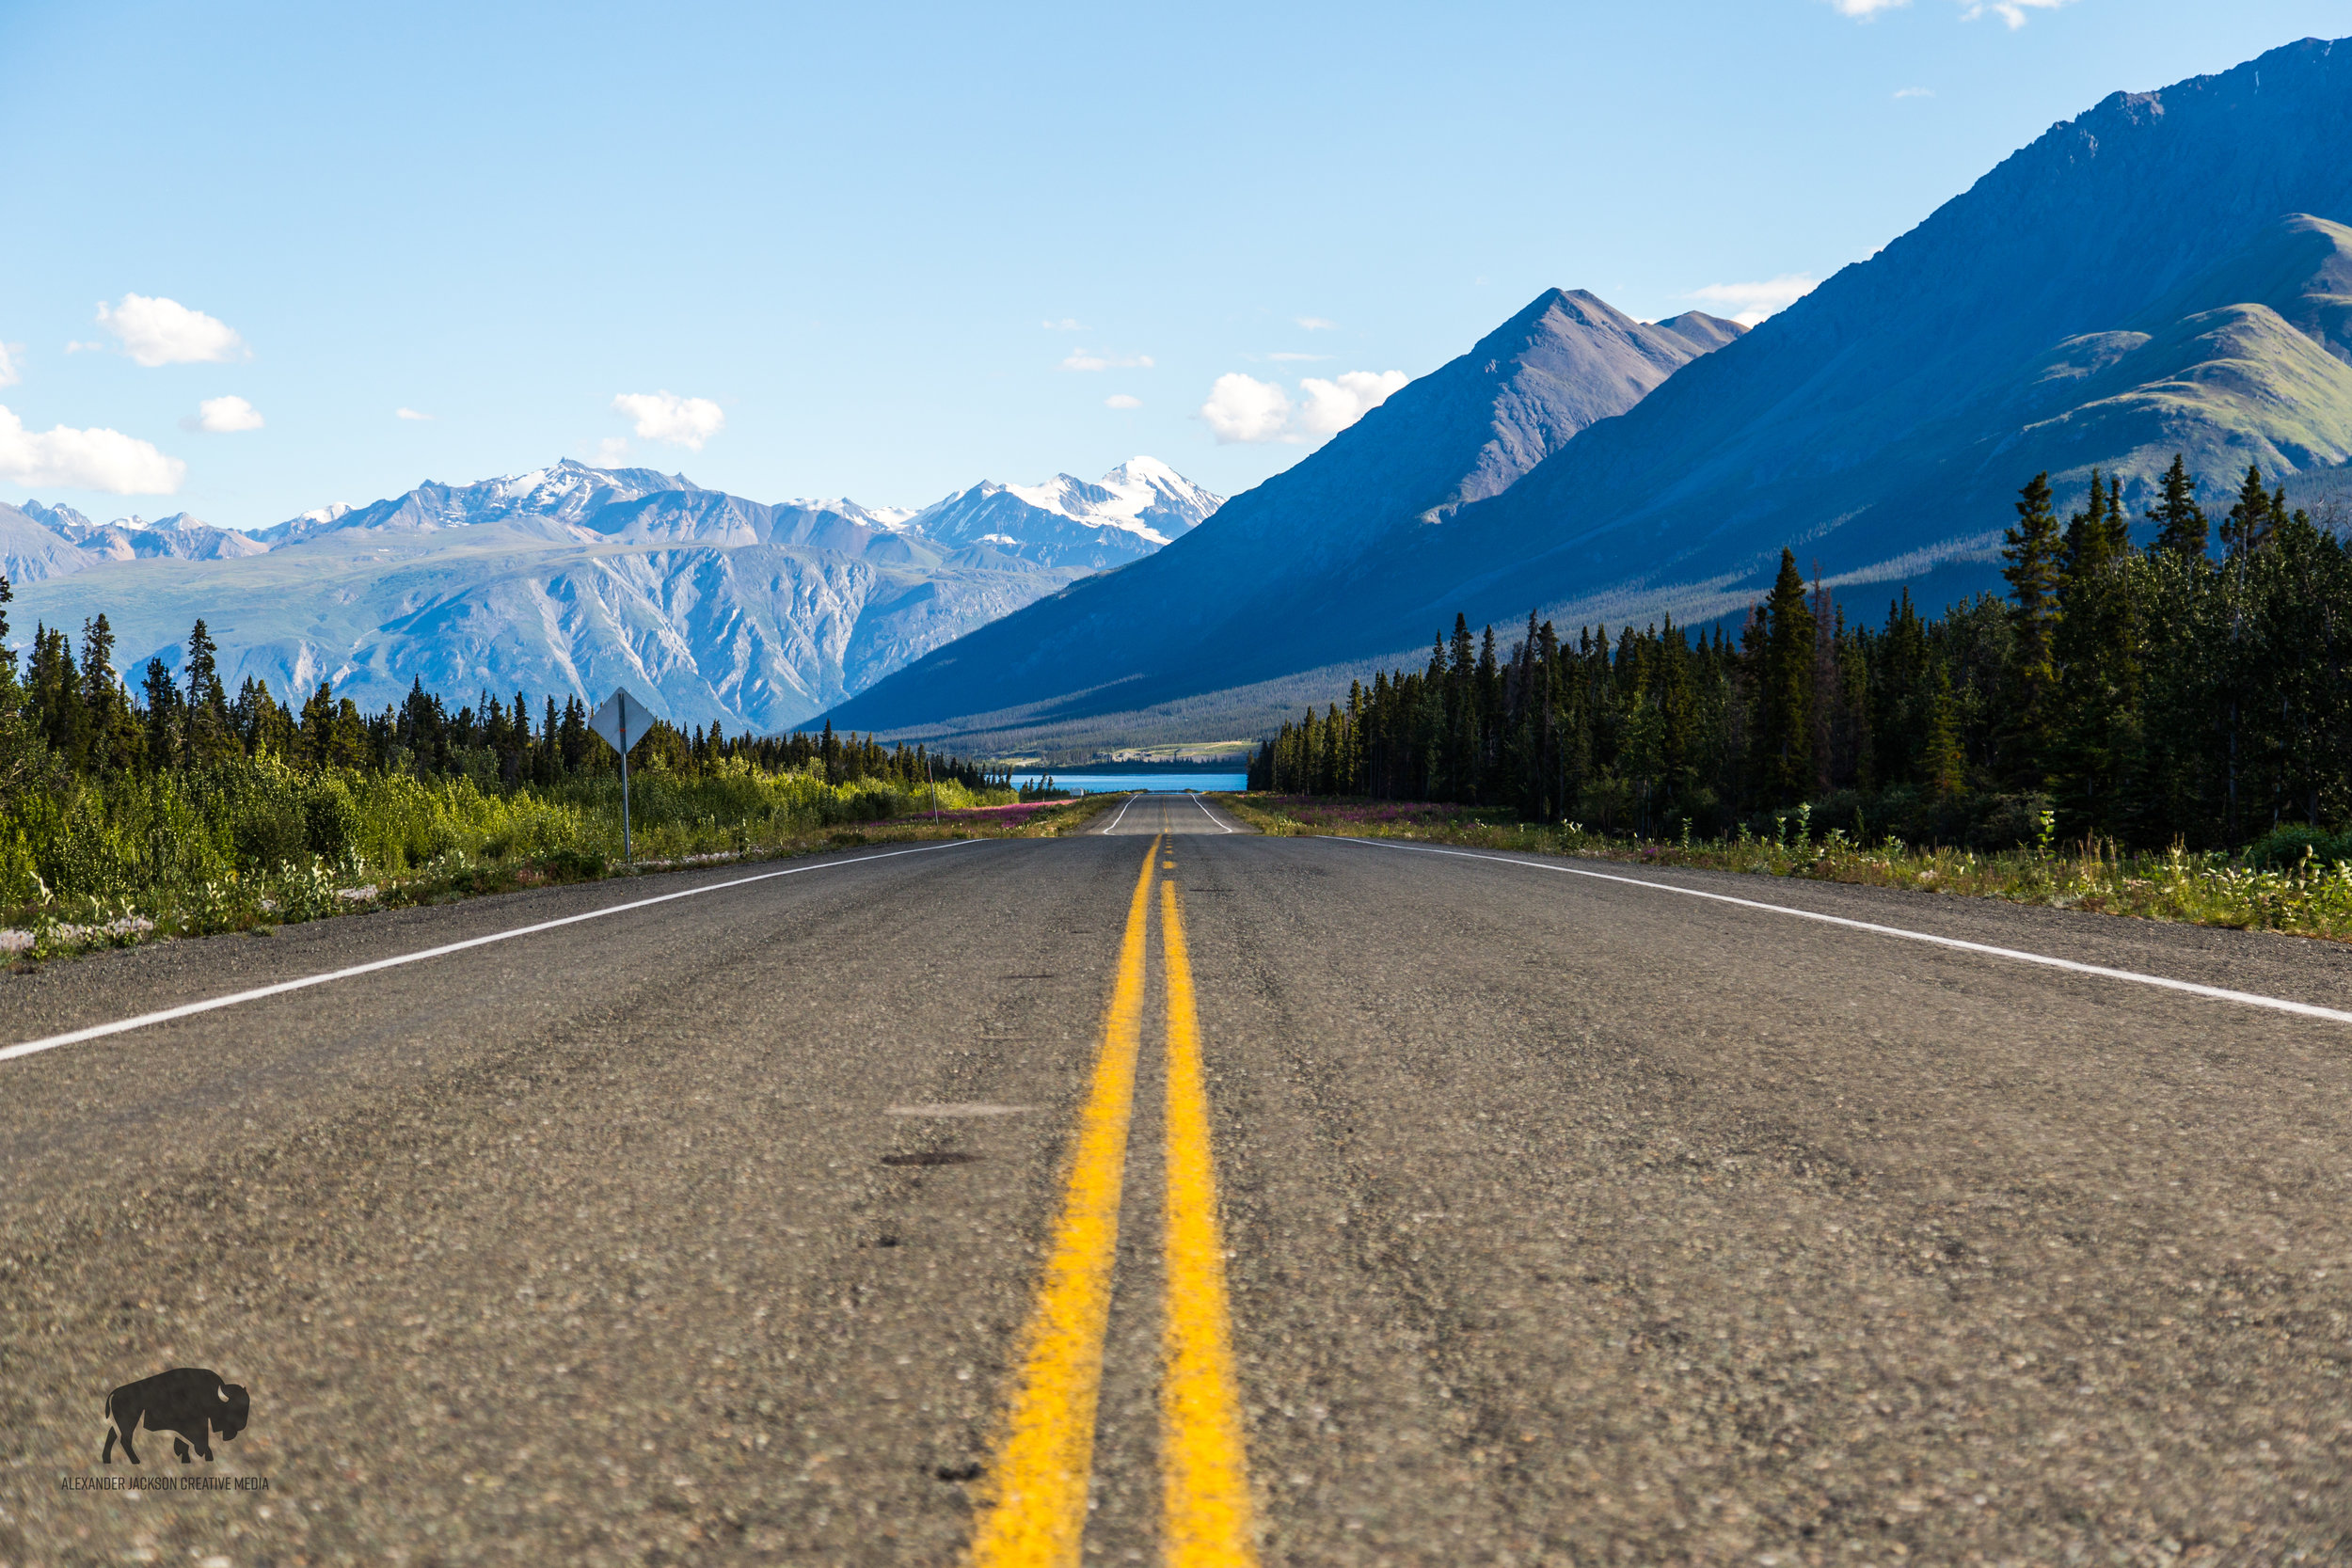 The Kluane Lake region of the Alaska highway offers up some pretty incredible views.